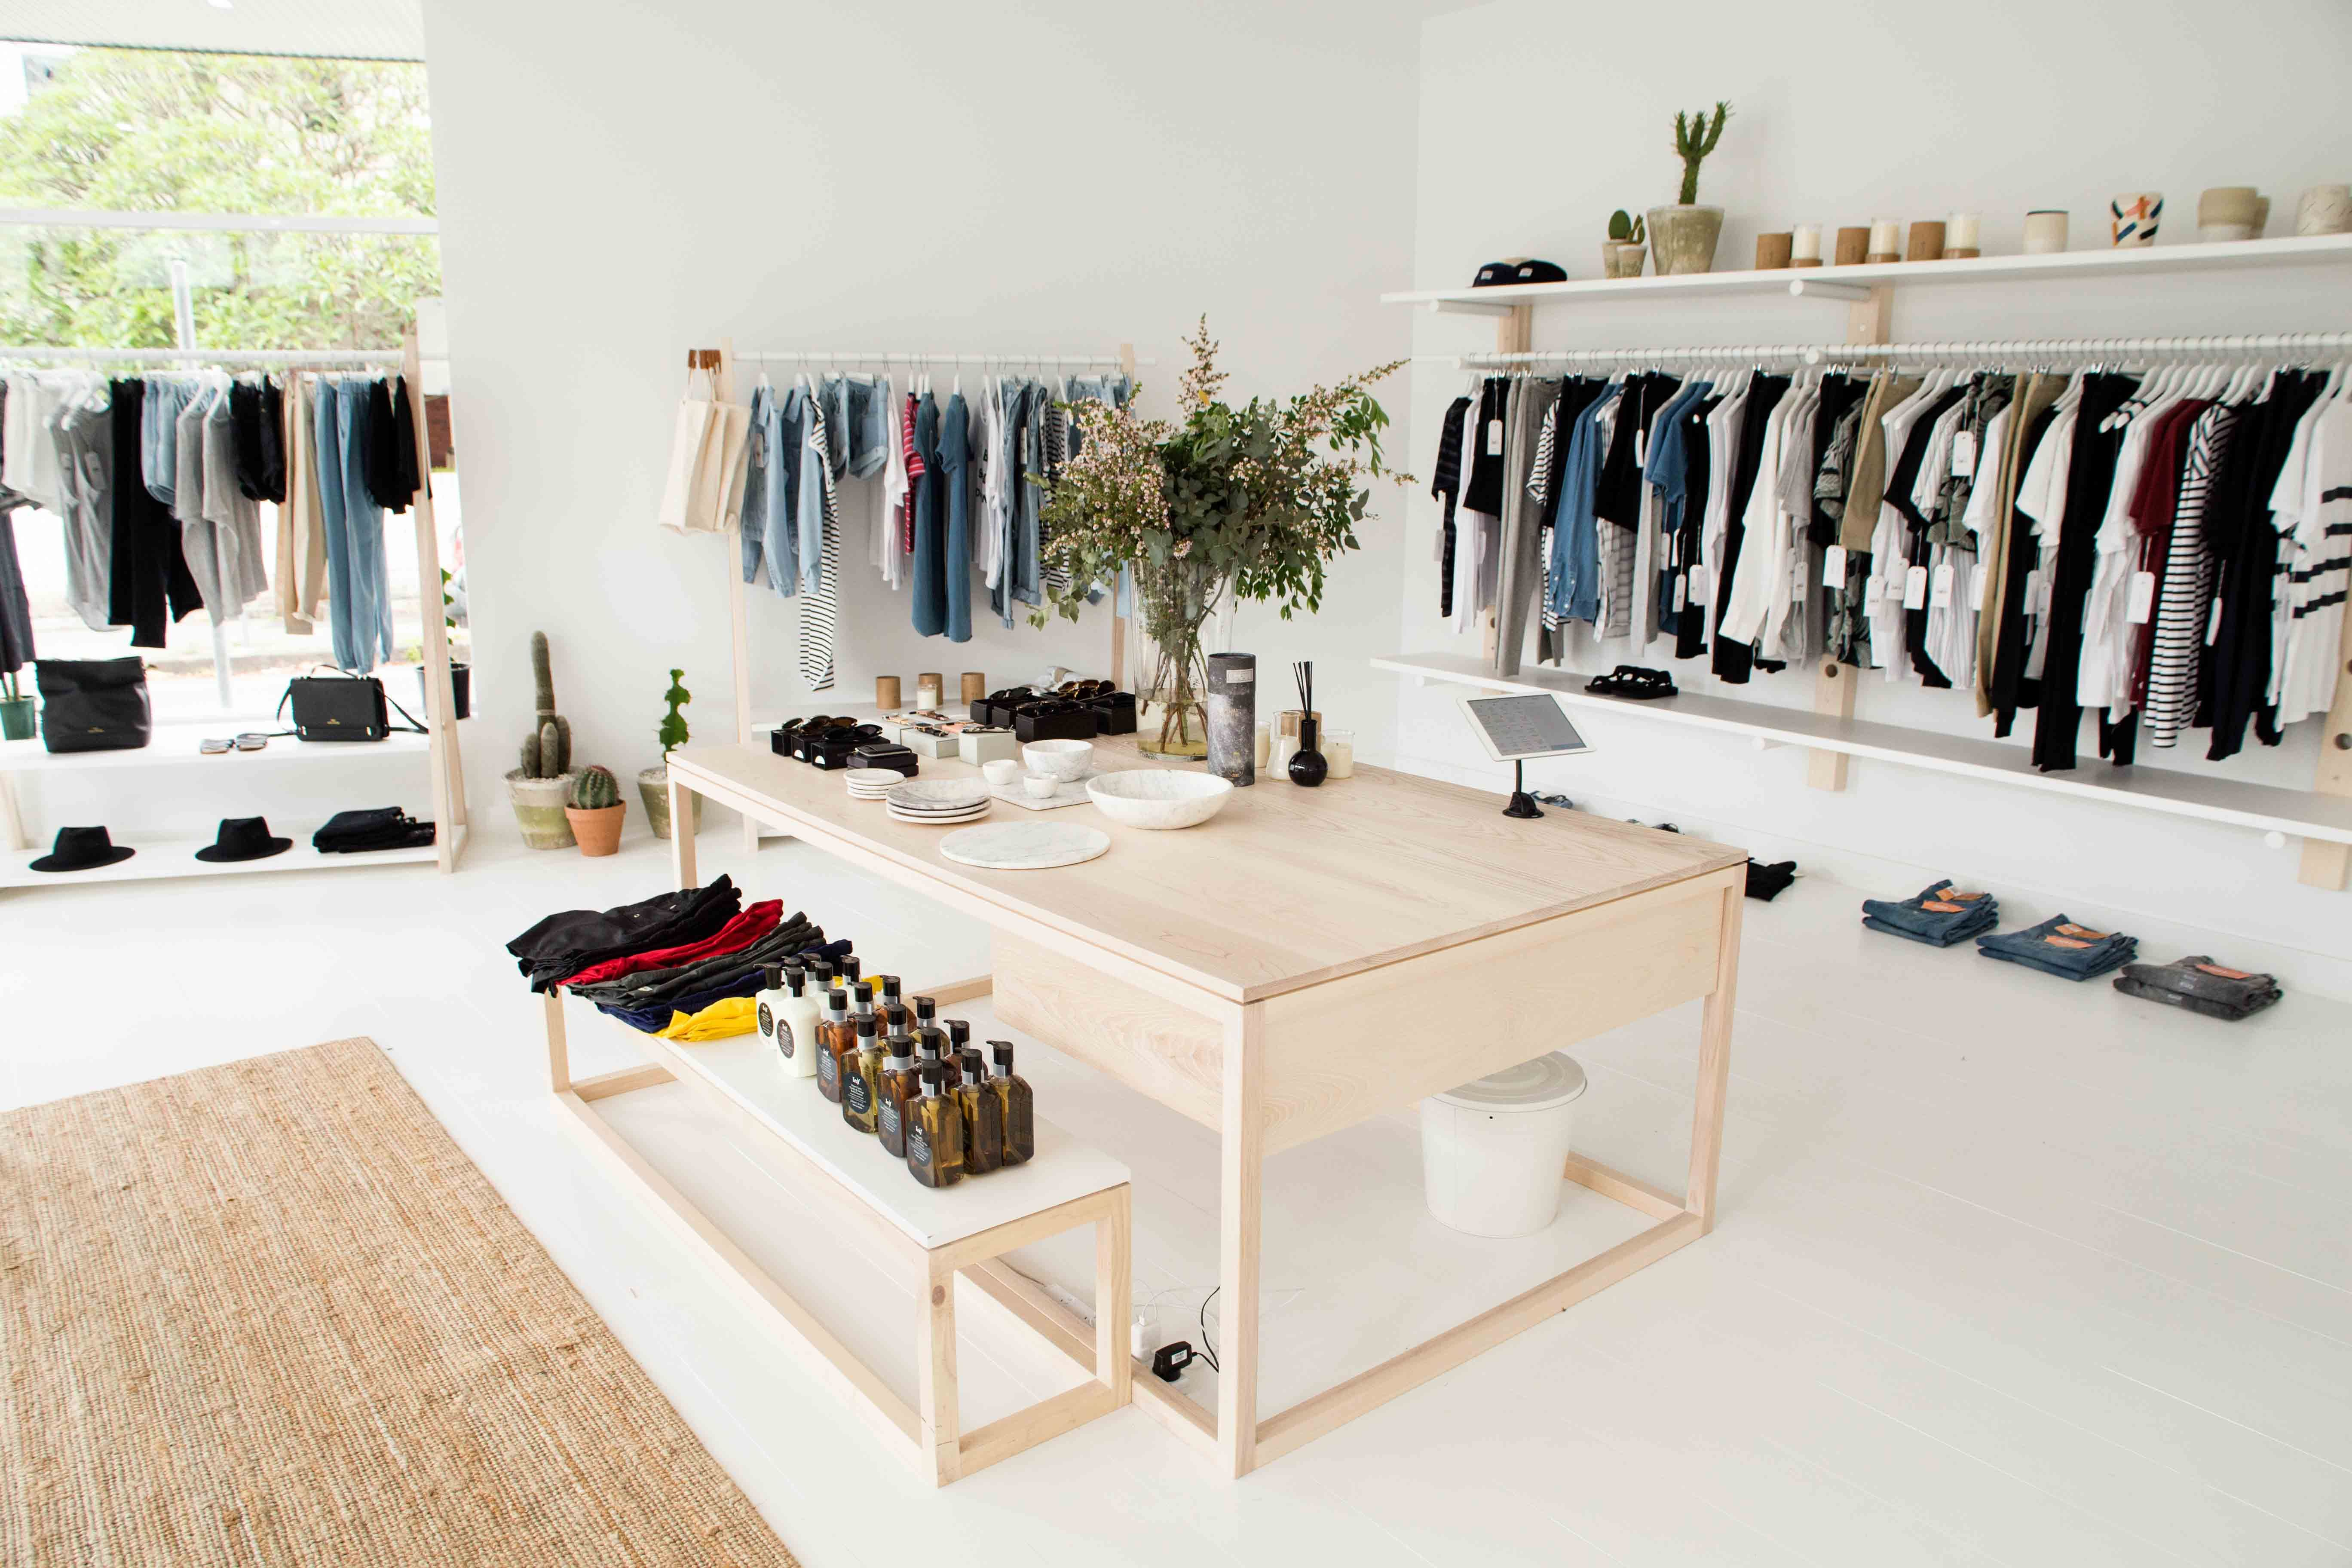 Assembly Labels Second Flagship Store Oct 2015 Visit Our Assembly